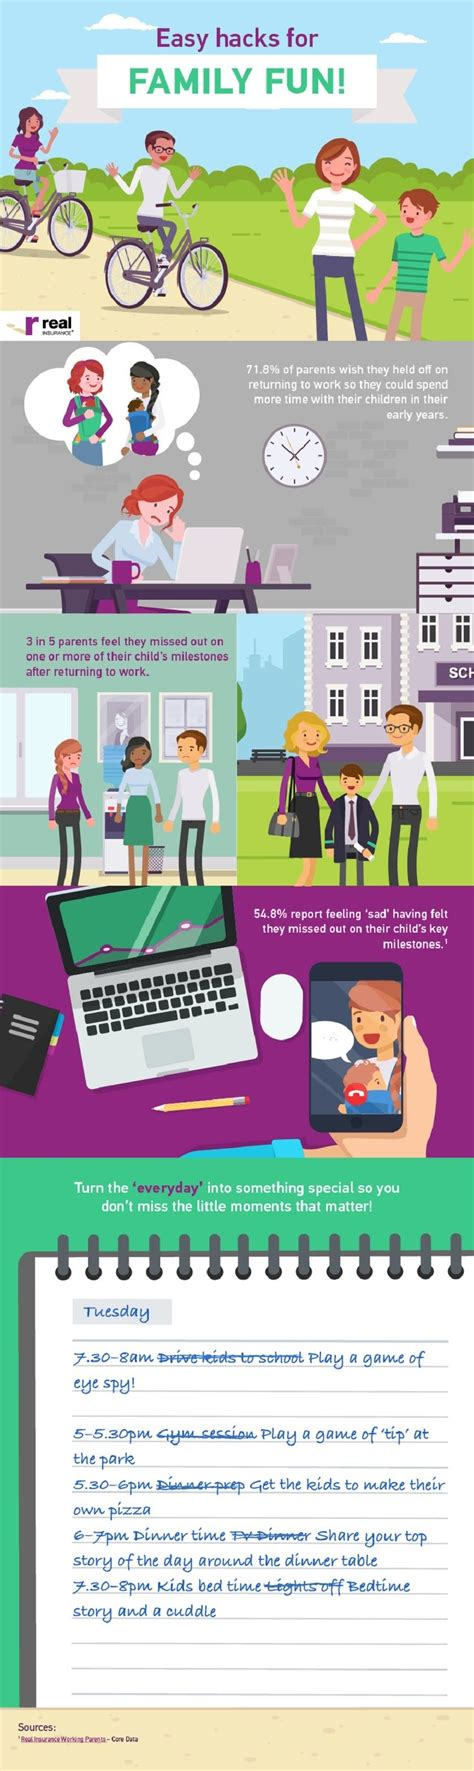 Boredom busters for families #infographic in 2020 Family